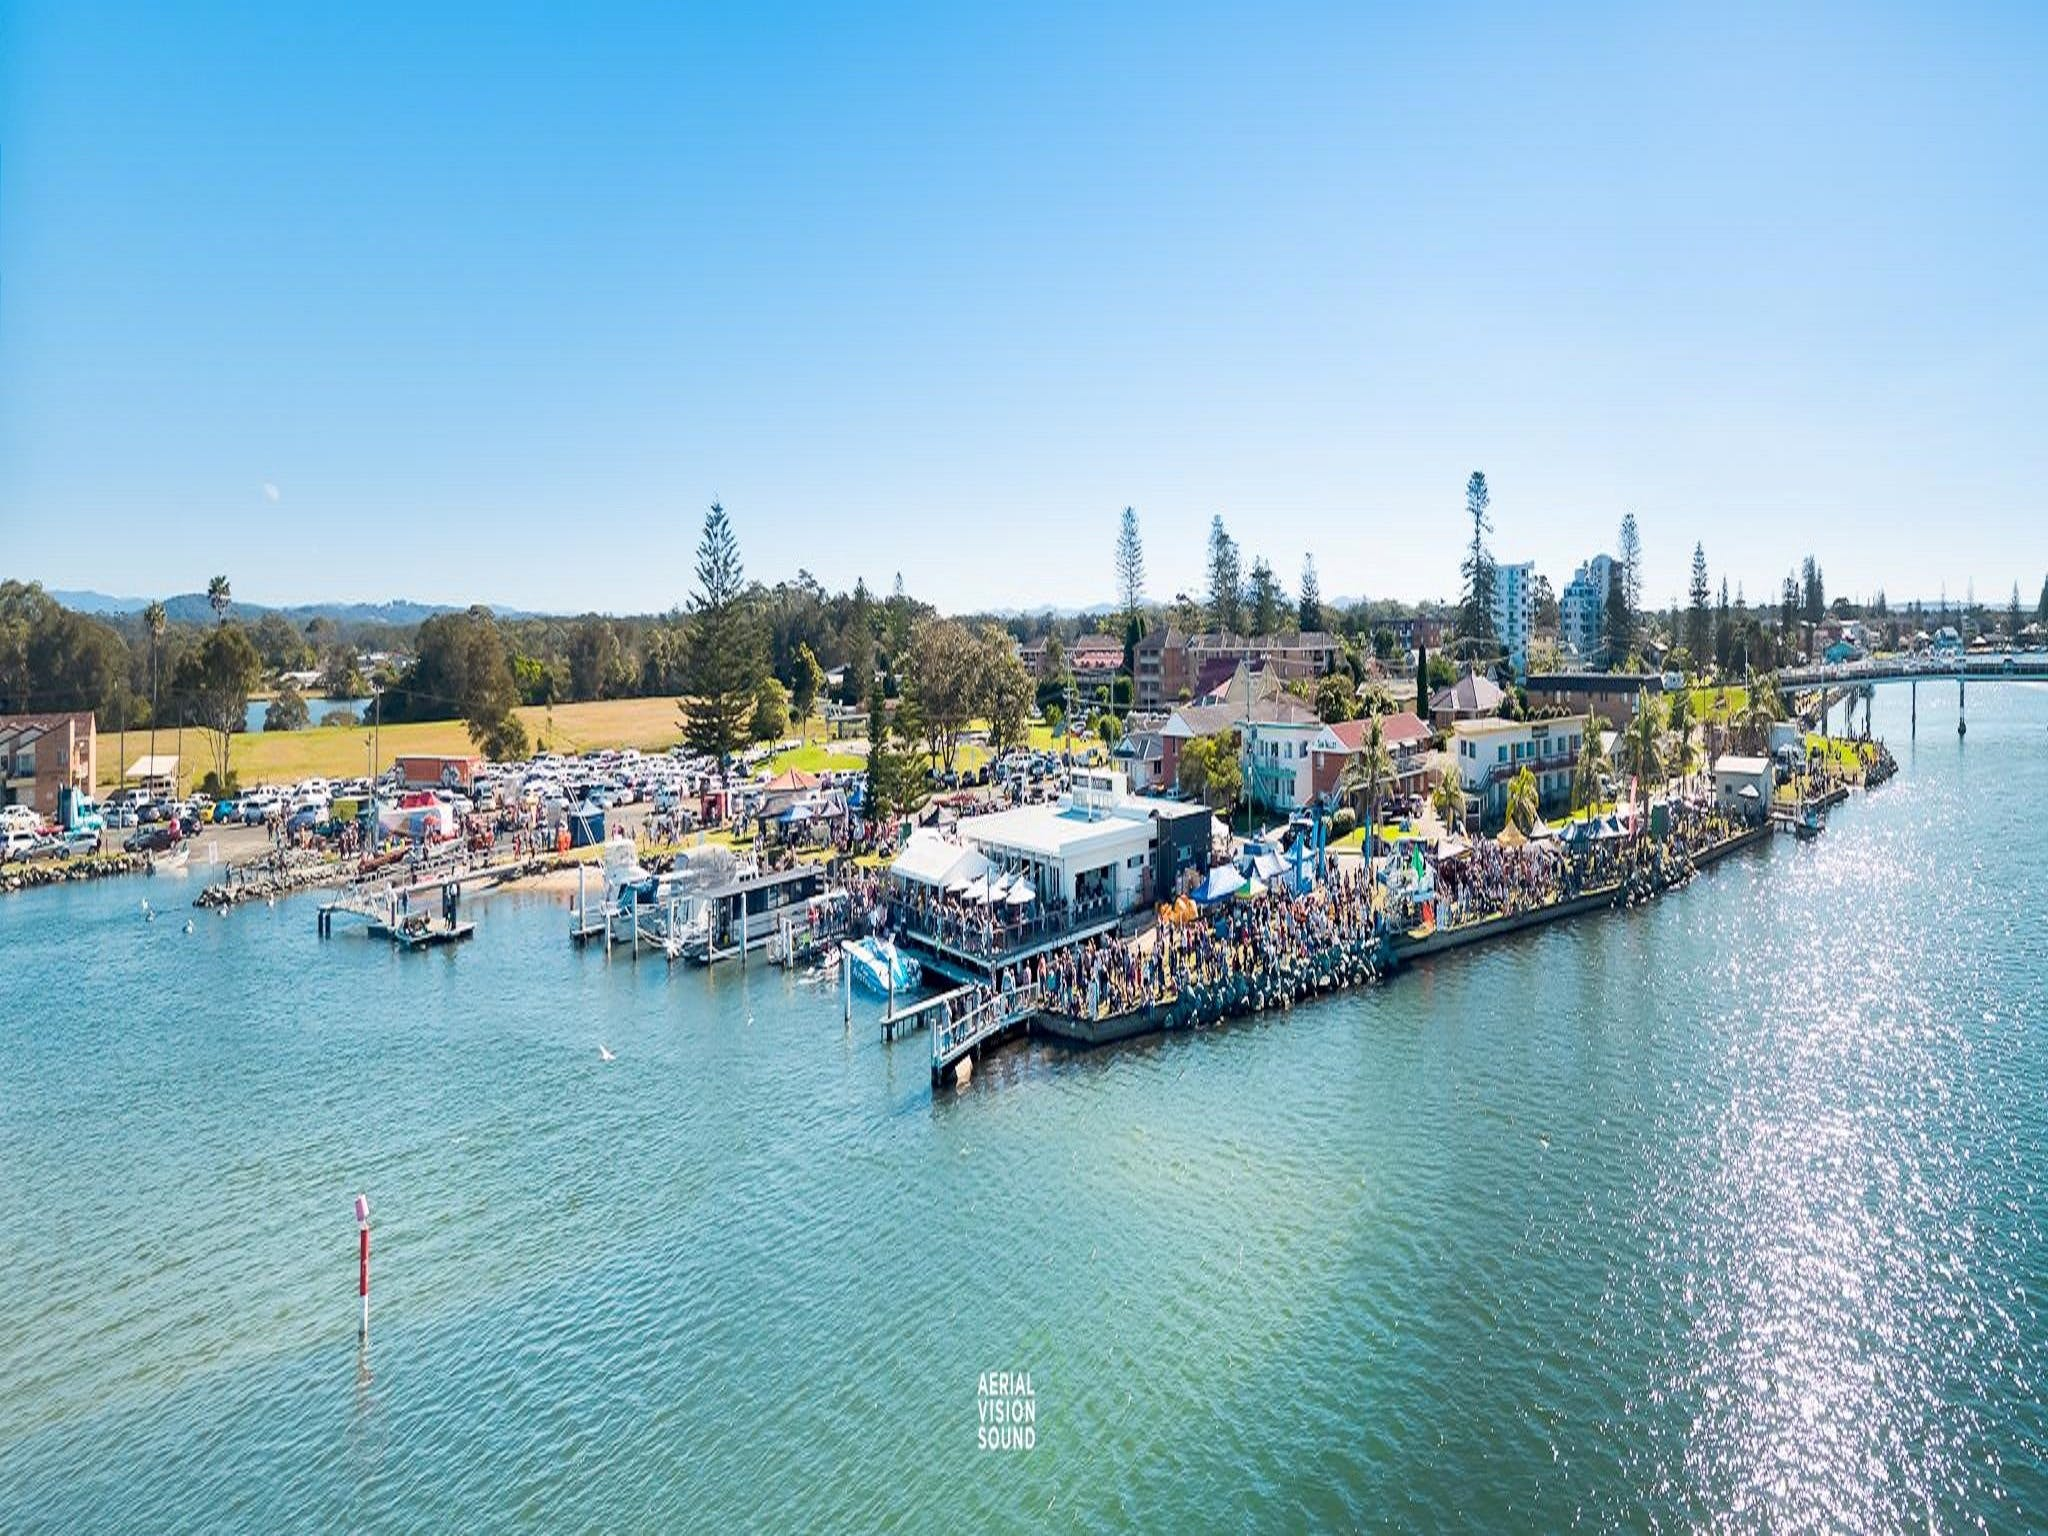 Fred Williams Aquatic Festival - Accommodation Ballina